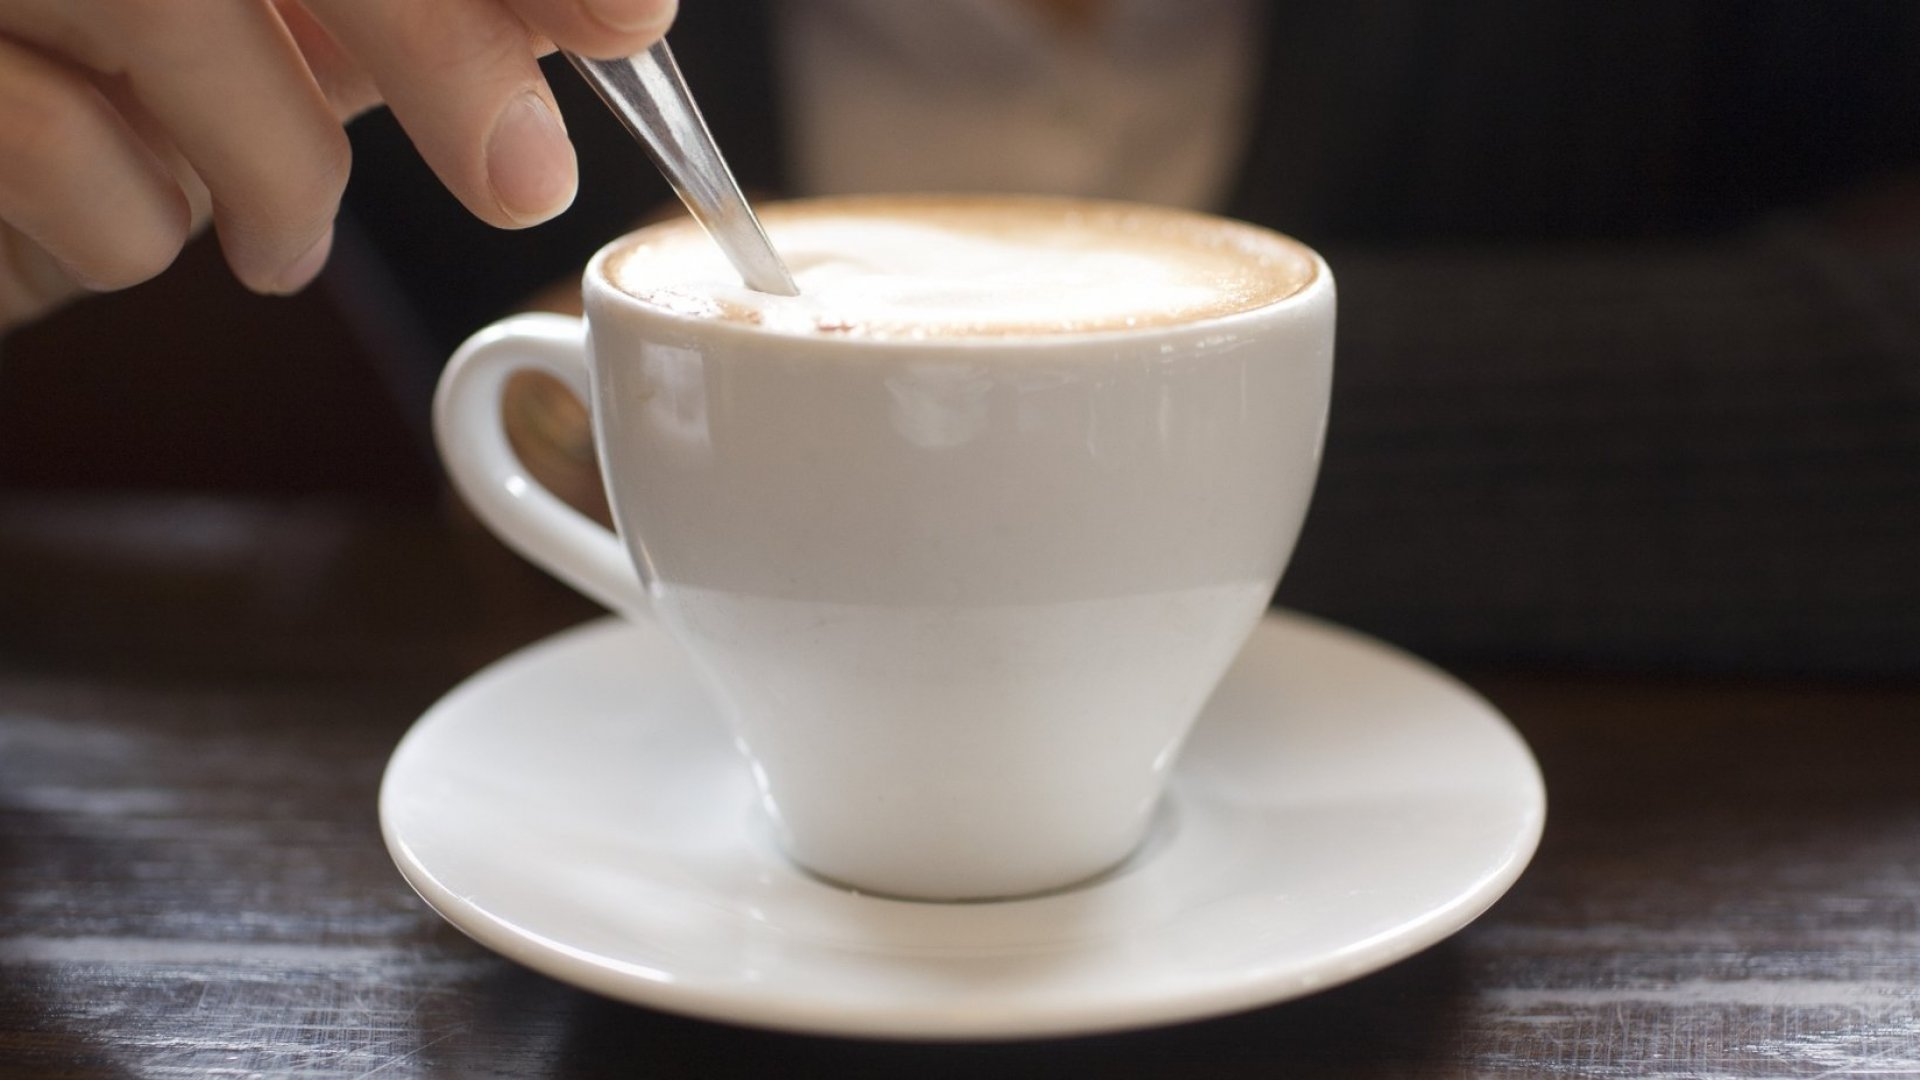 Science Finally Opens Up About People Who Drink Too Much Coffee